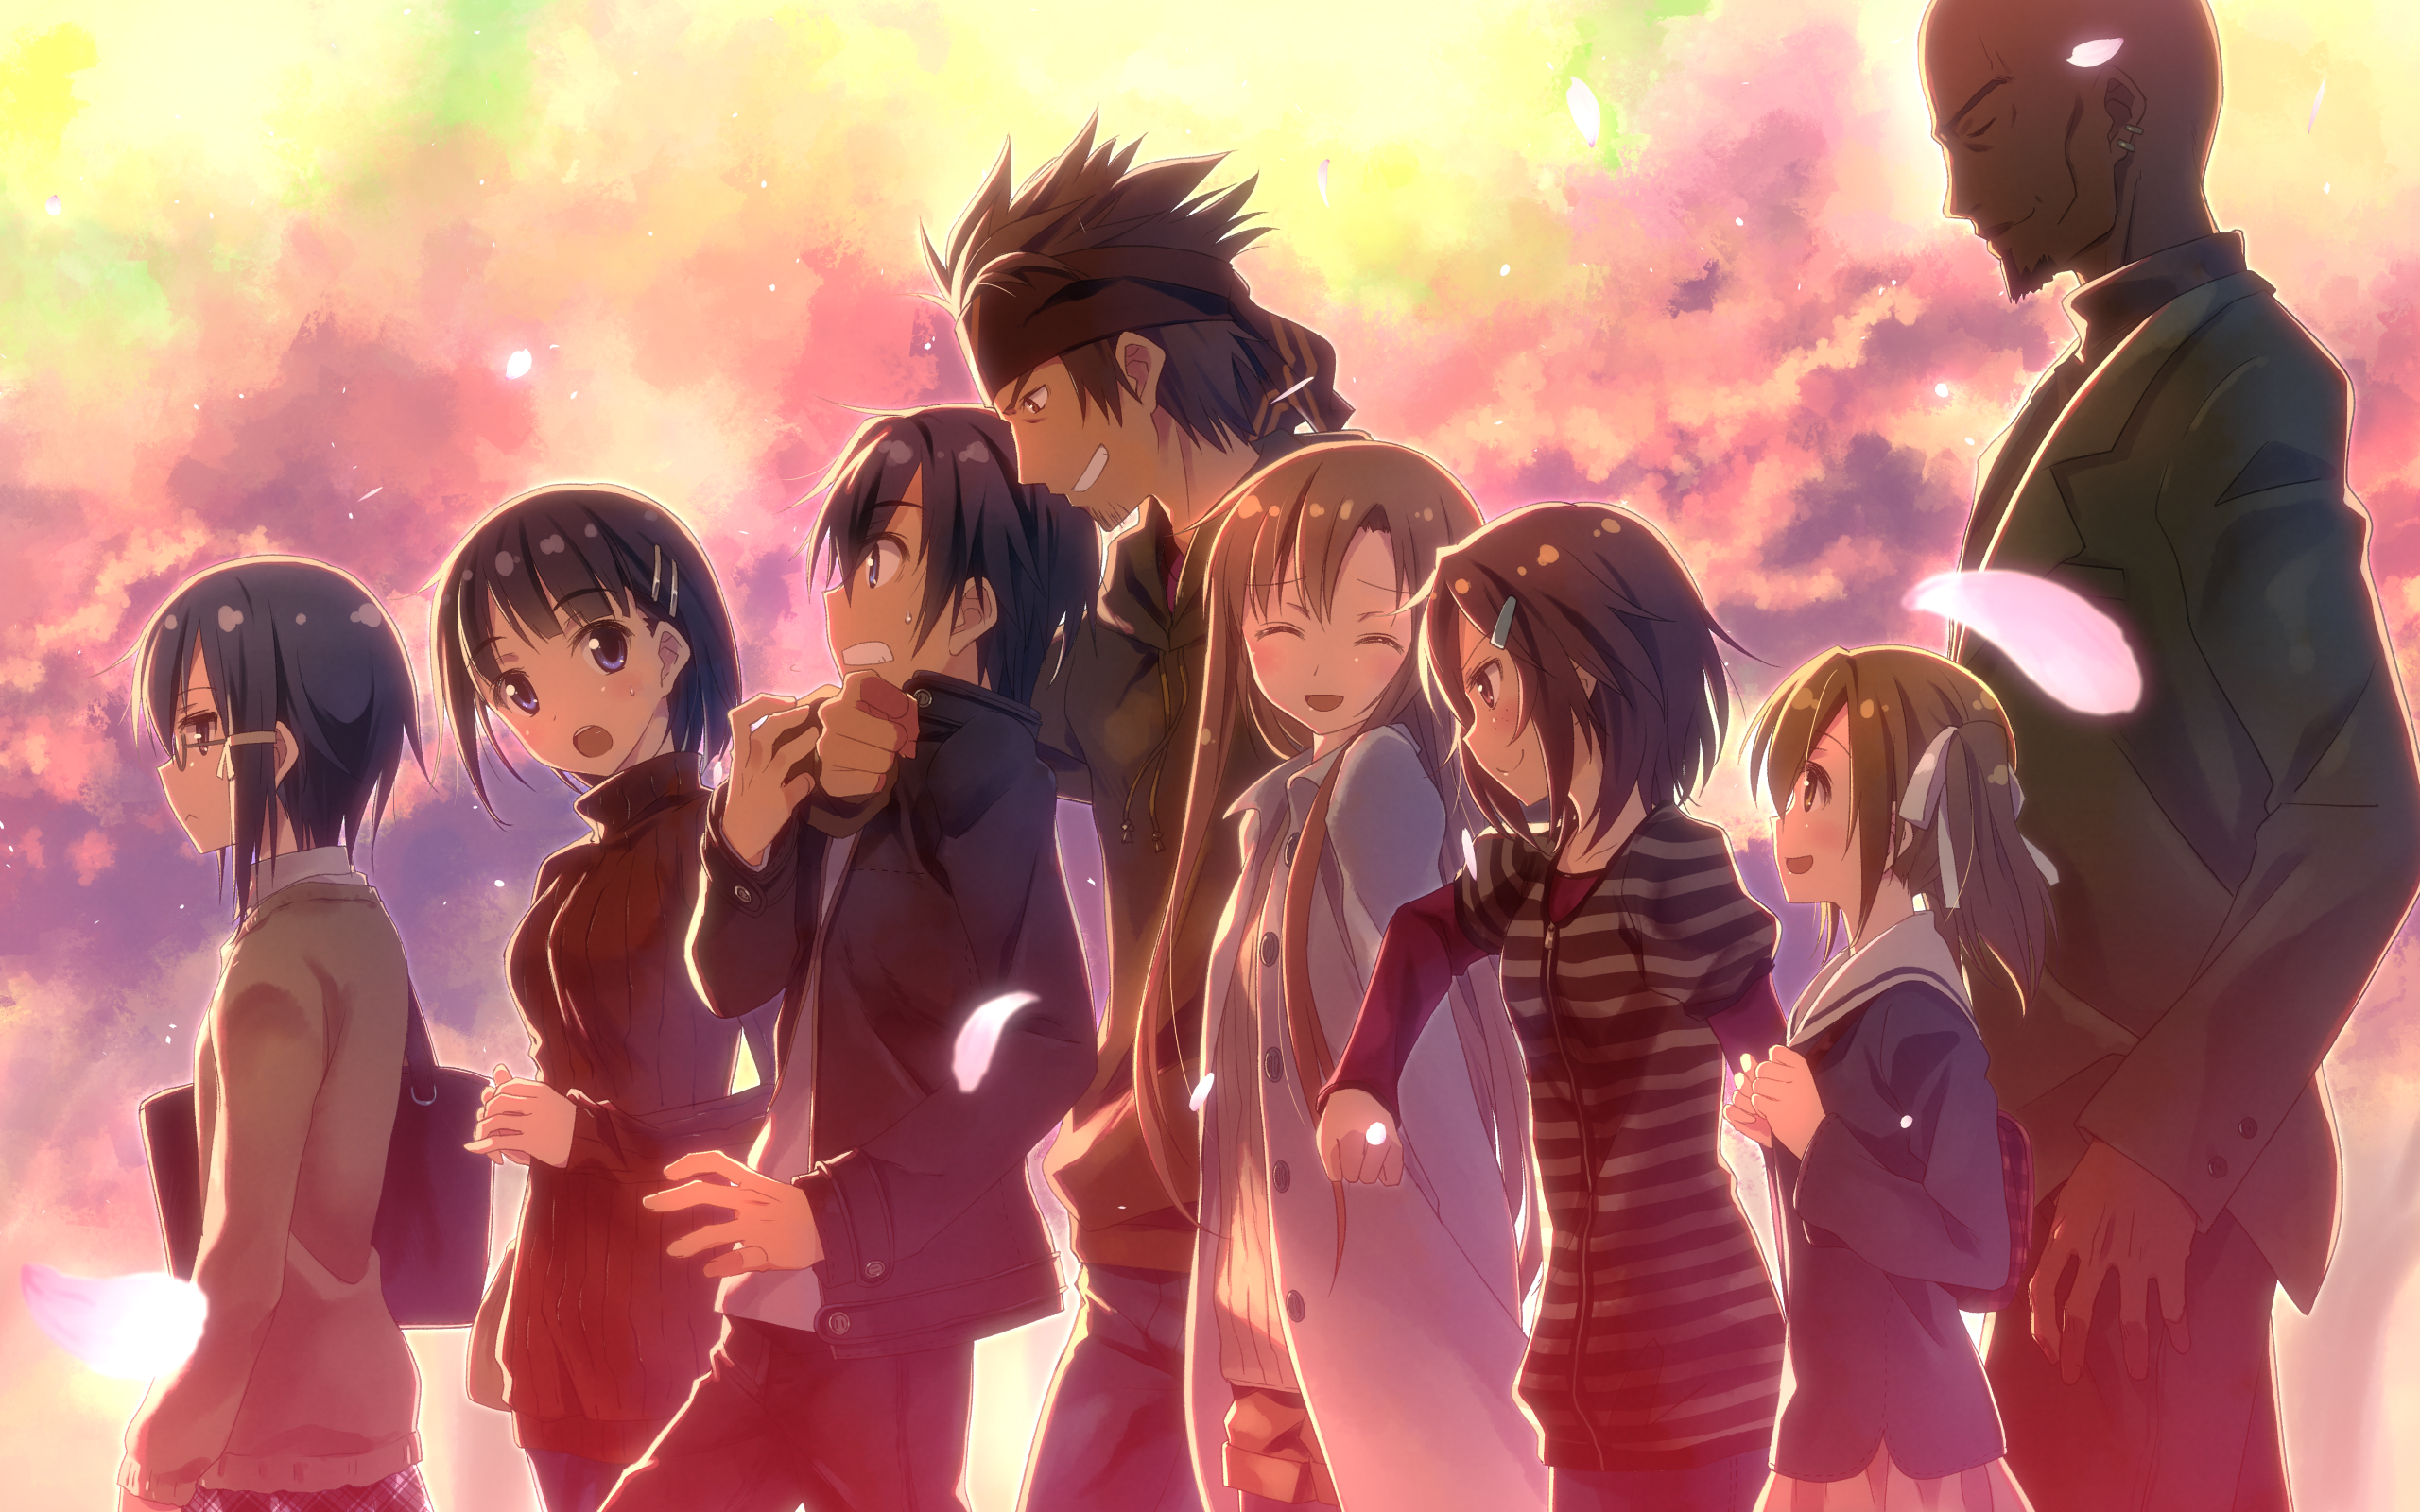 Sword Art Online Hd Wallpaper Zerochan Anime Image Board